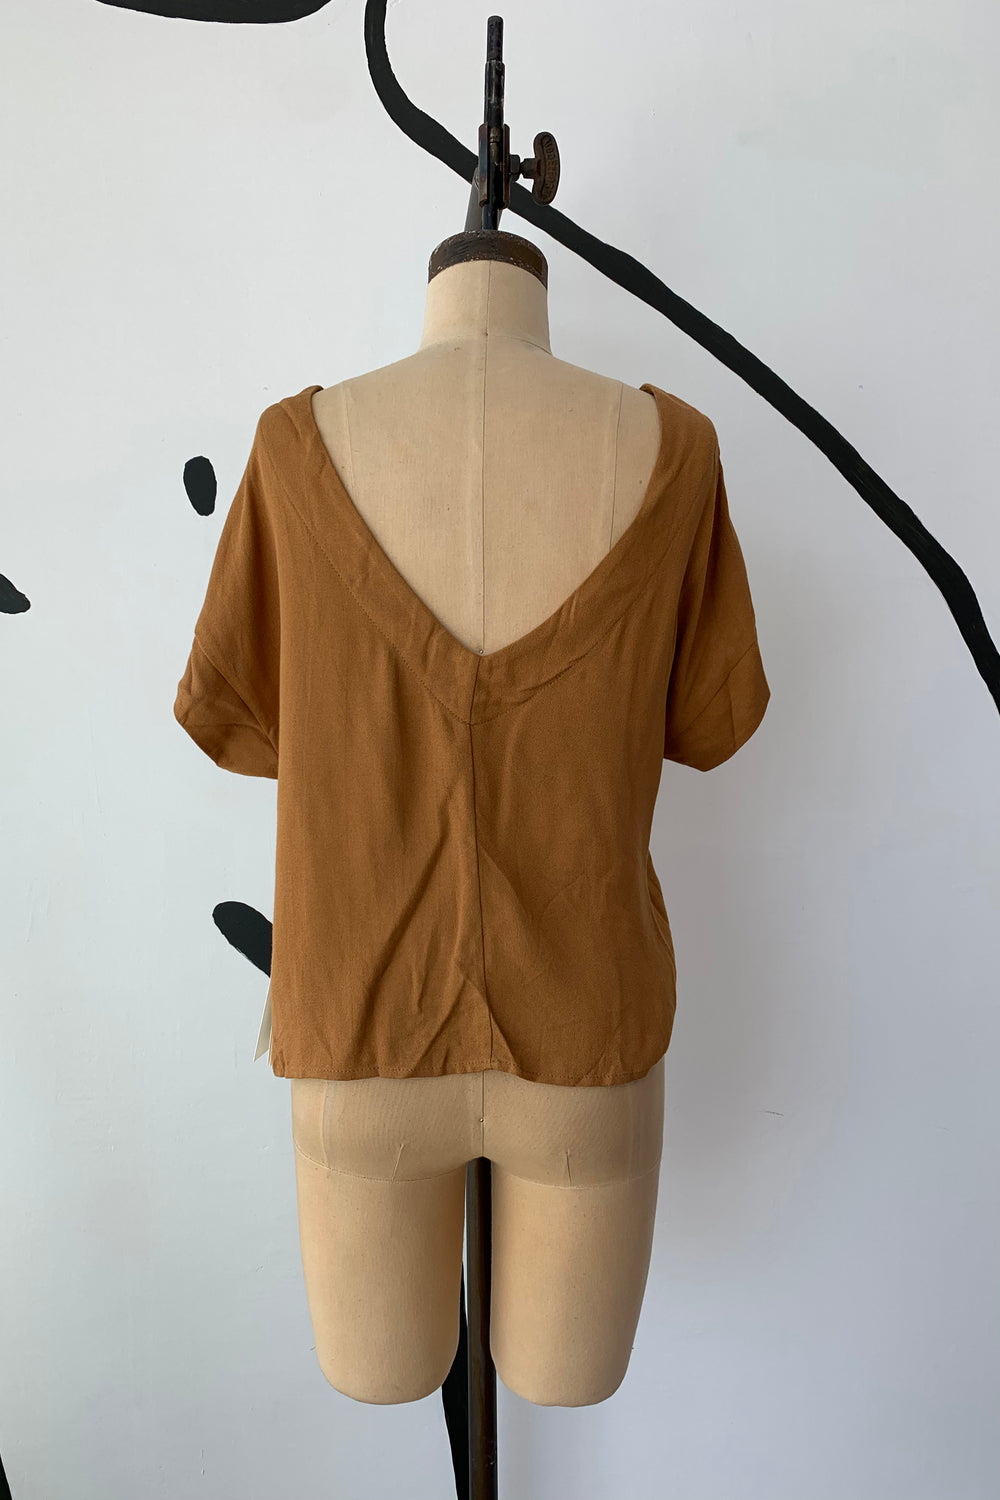 Sample Sale Lilah Top in Brown - Whimsy & Row